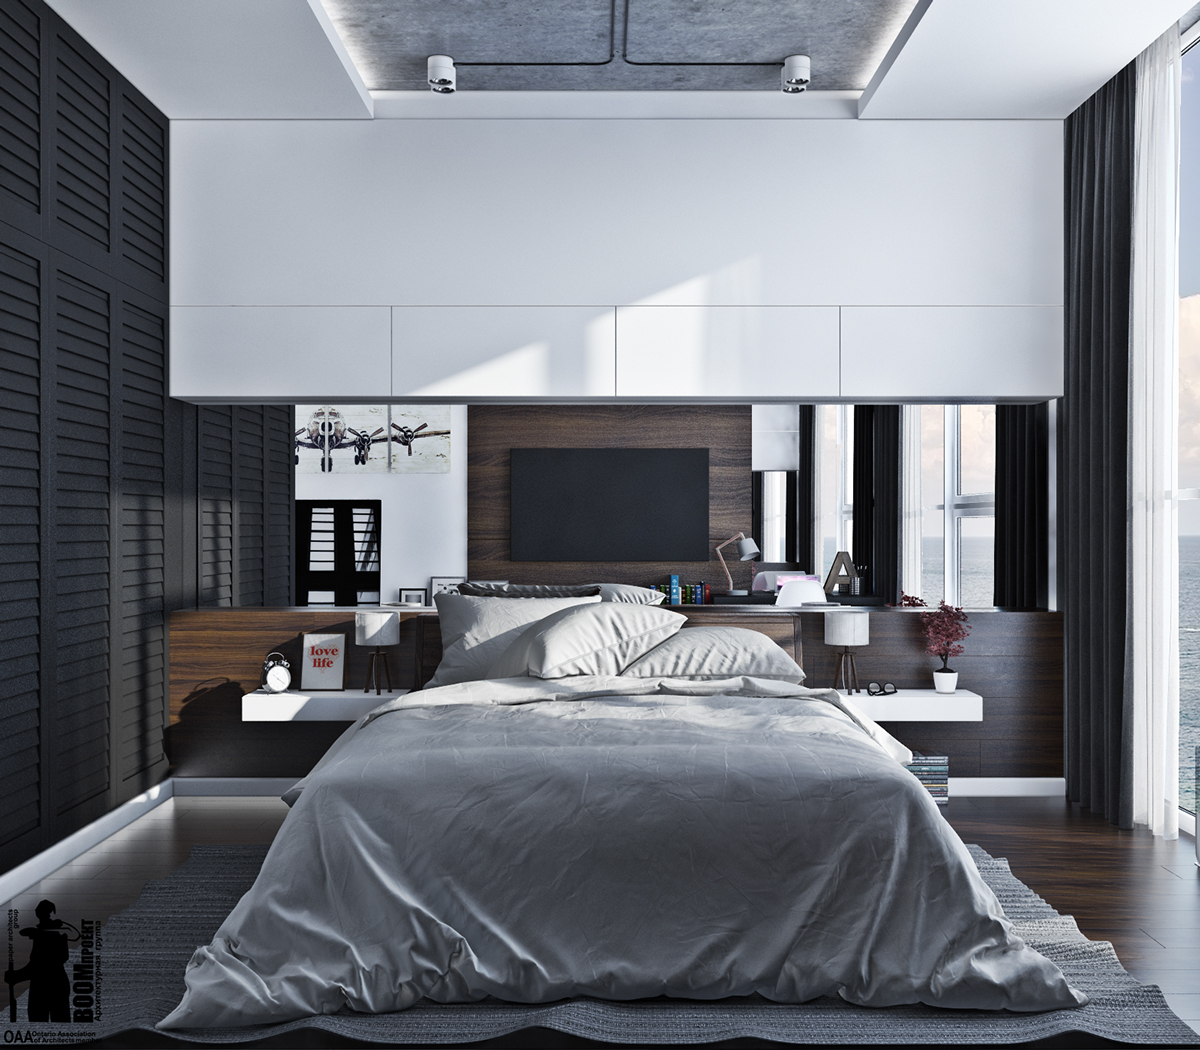 Stylish Bedrooms Amusing 7 Stylish Bedrooms With Lots Of Detail